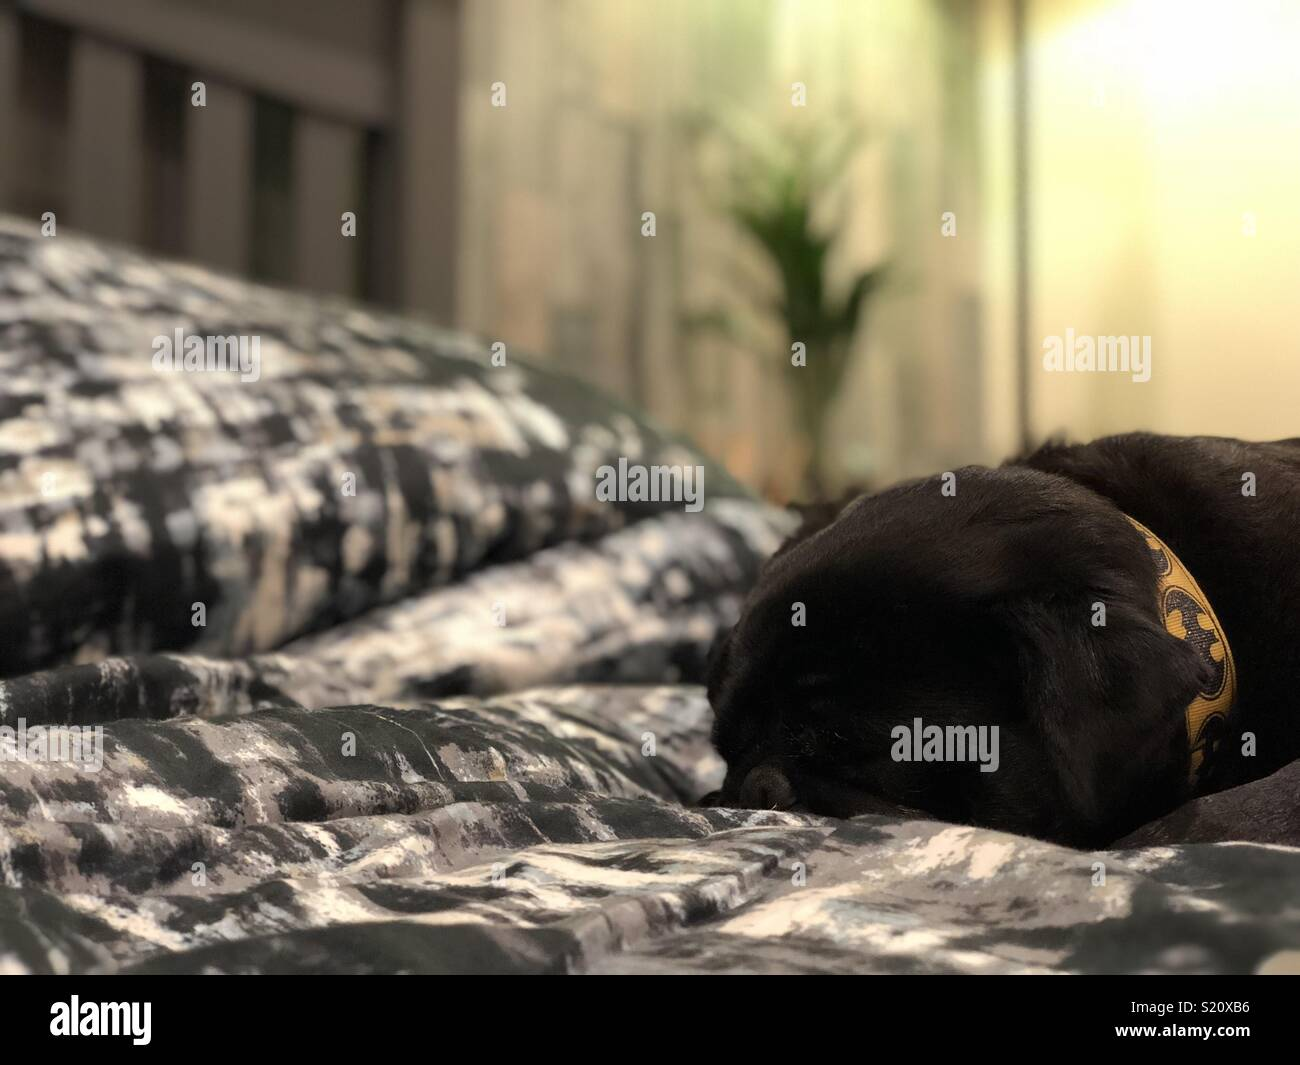 Pug on the bed - Stock Image